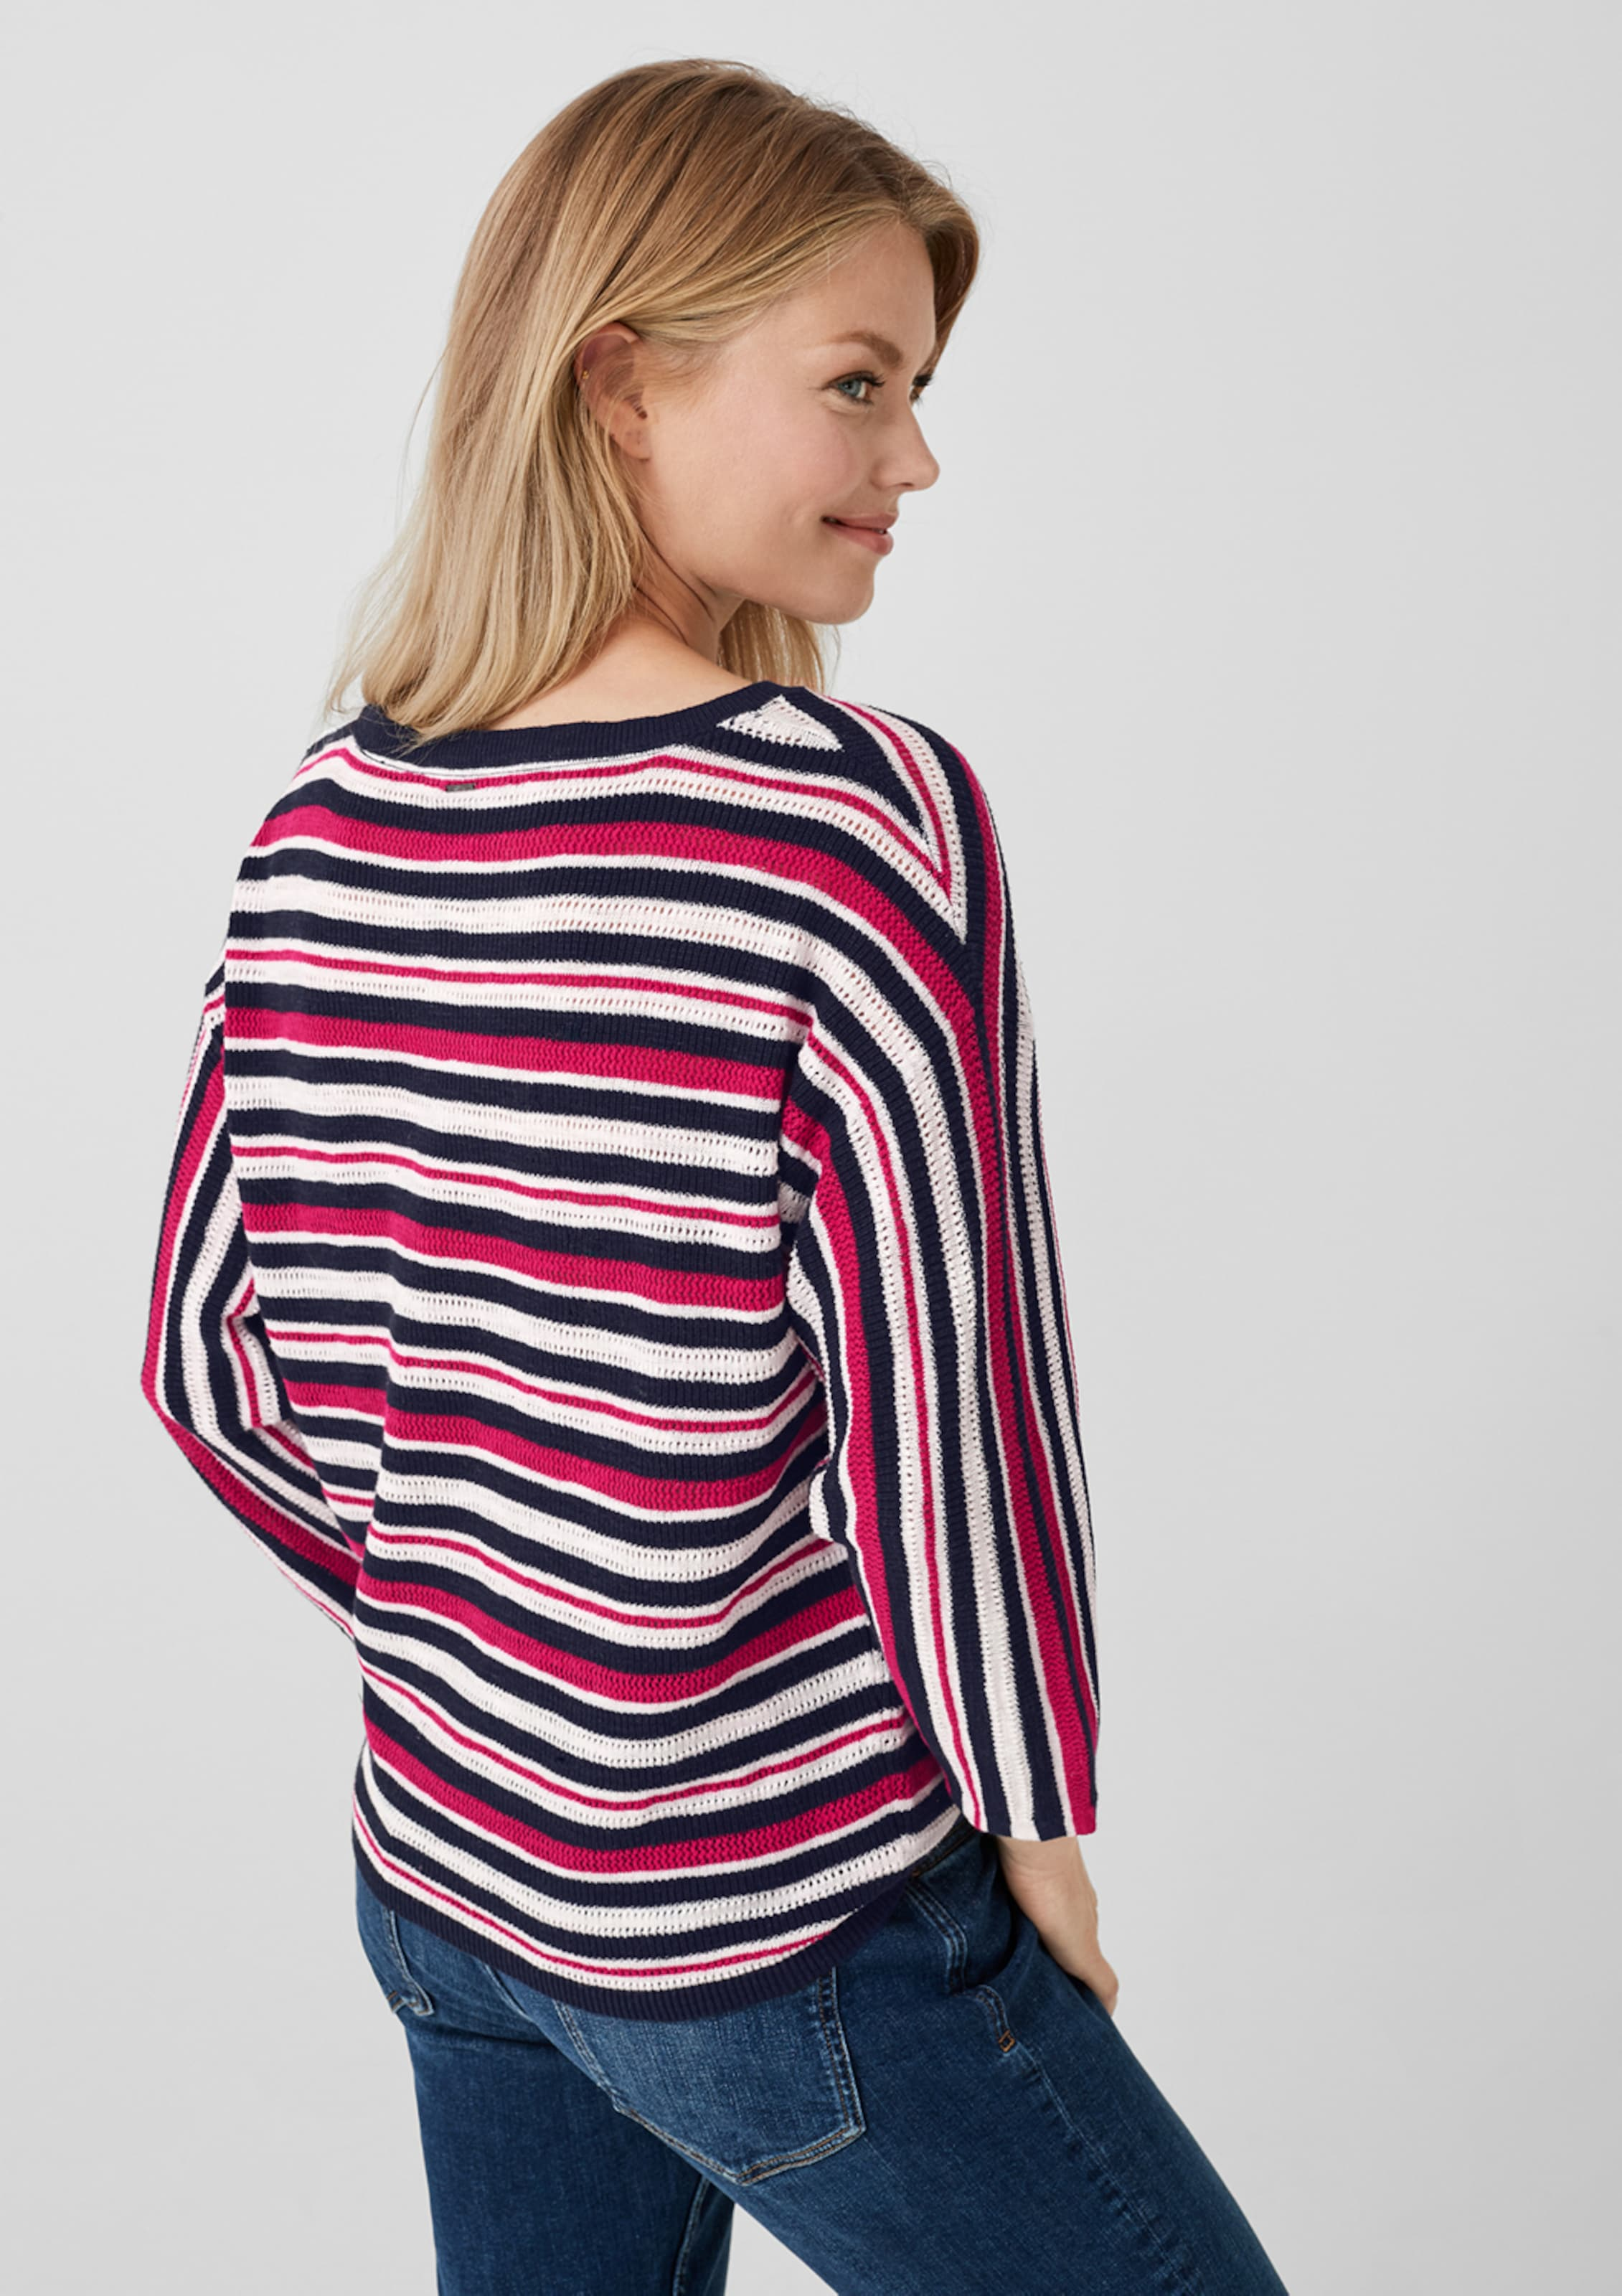 Pullover S oliver oliver BlauRot S S Pullover In BlauRot oliver In N8nO0wvm